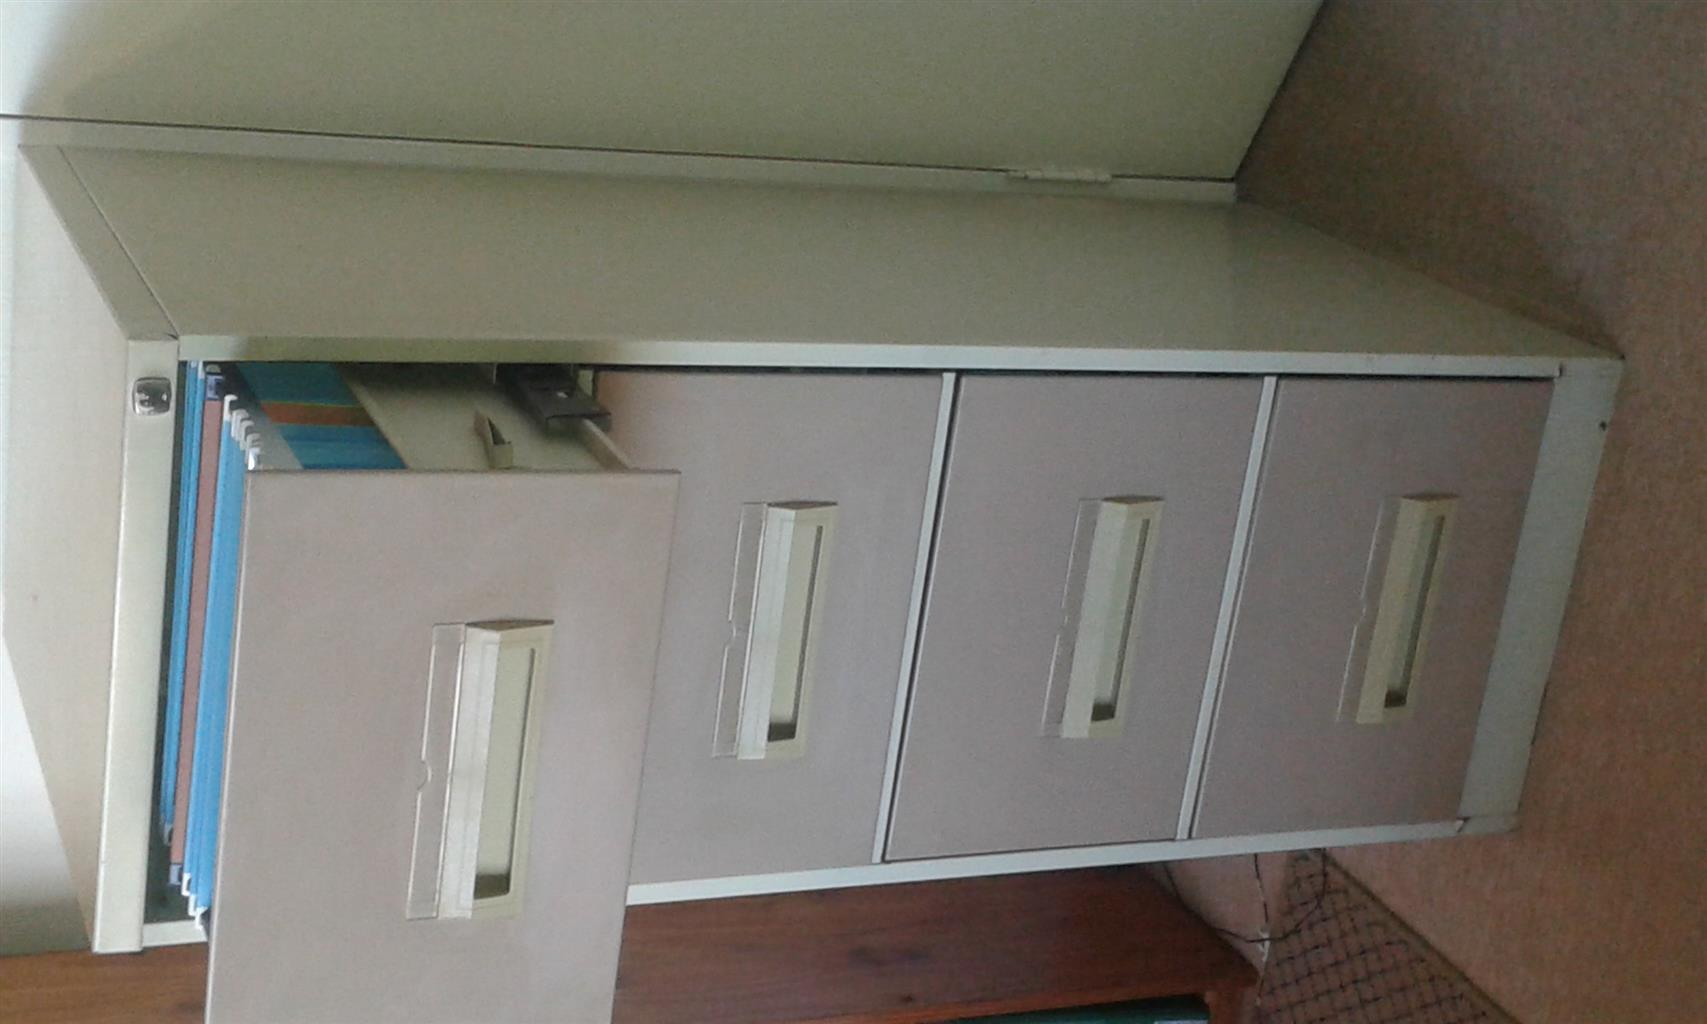 2 Door stationery cabinet with shelf in melamine